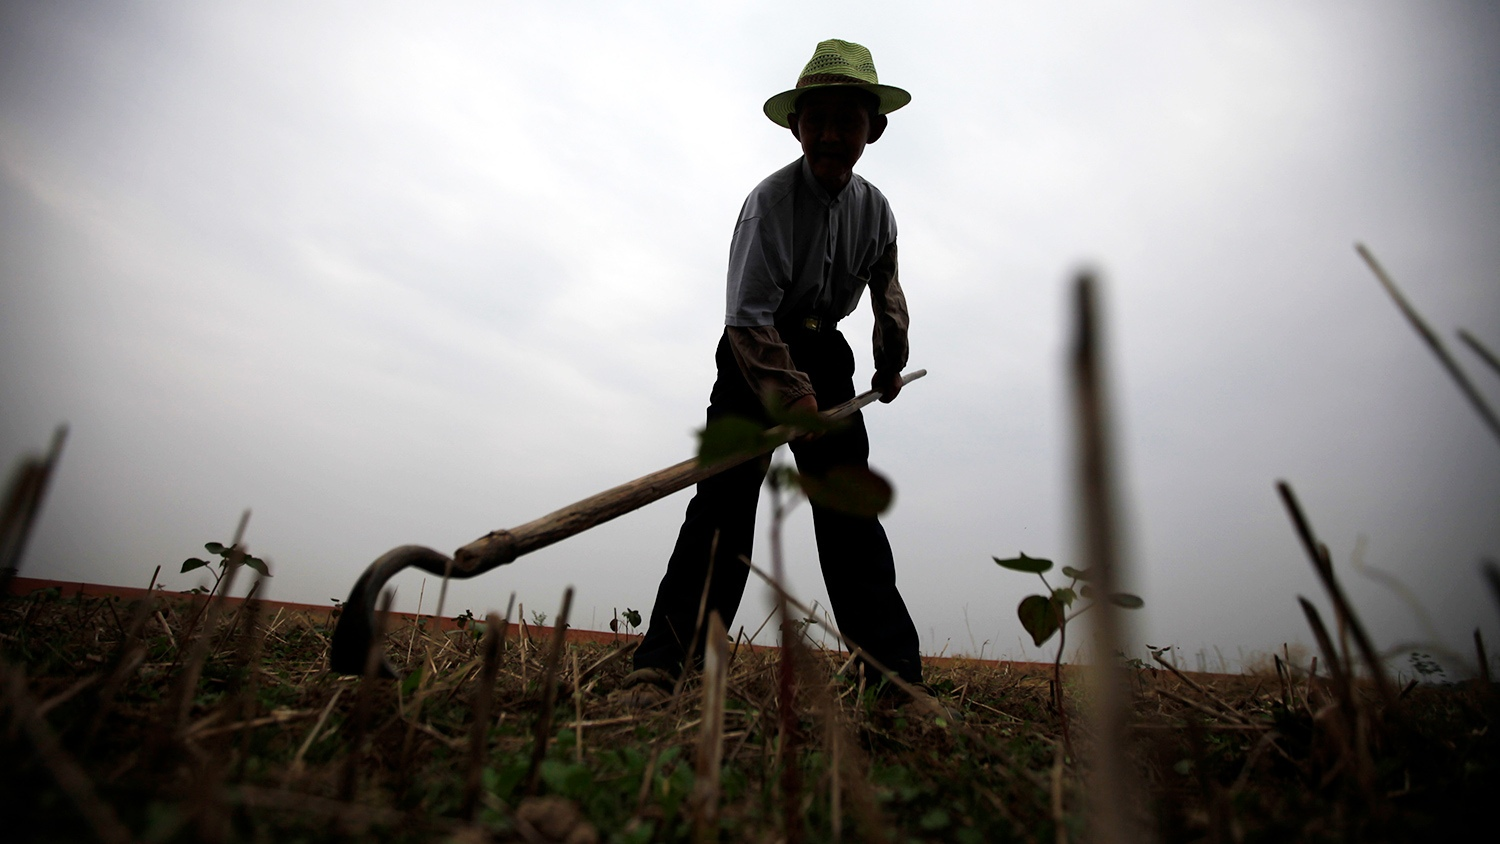 Cotton scandal: there will definitely be a war between China and U.S.